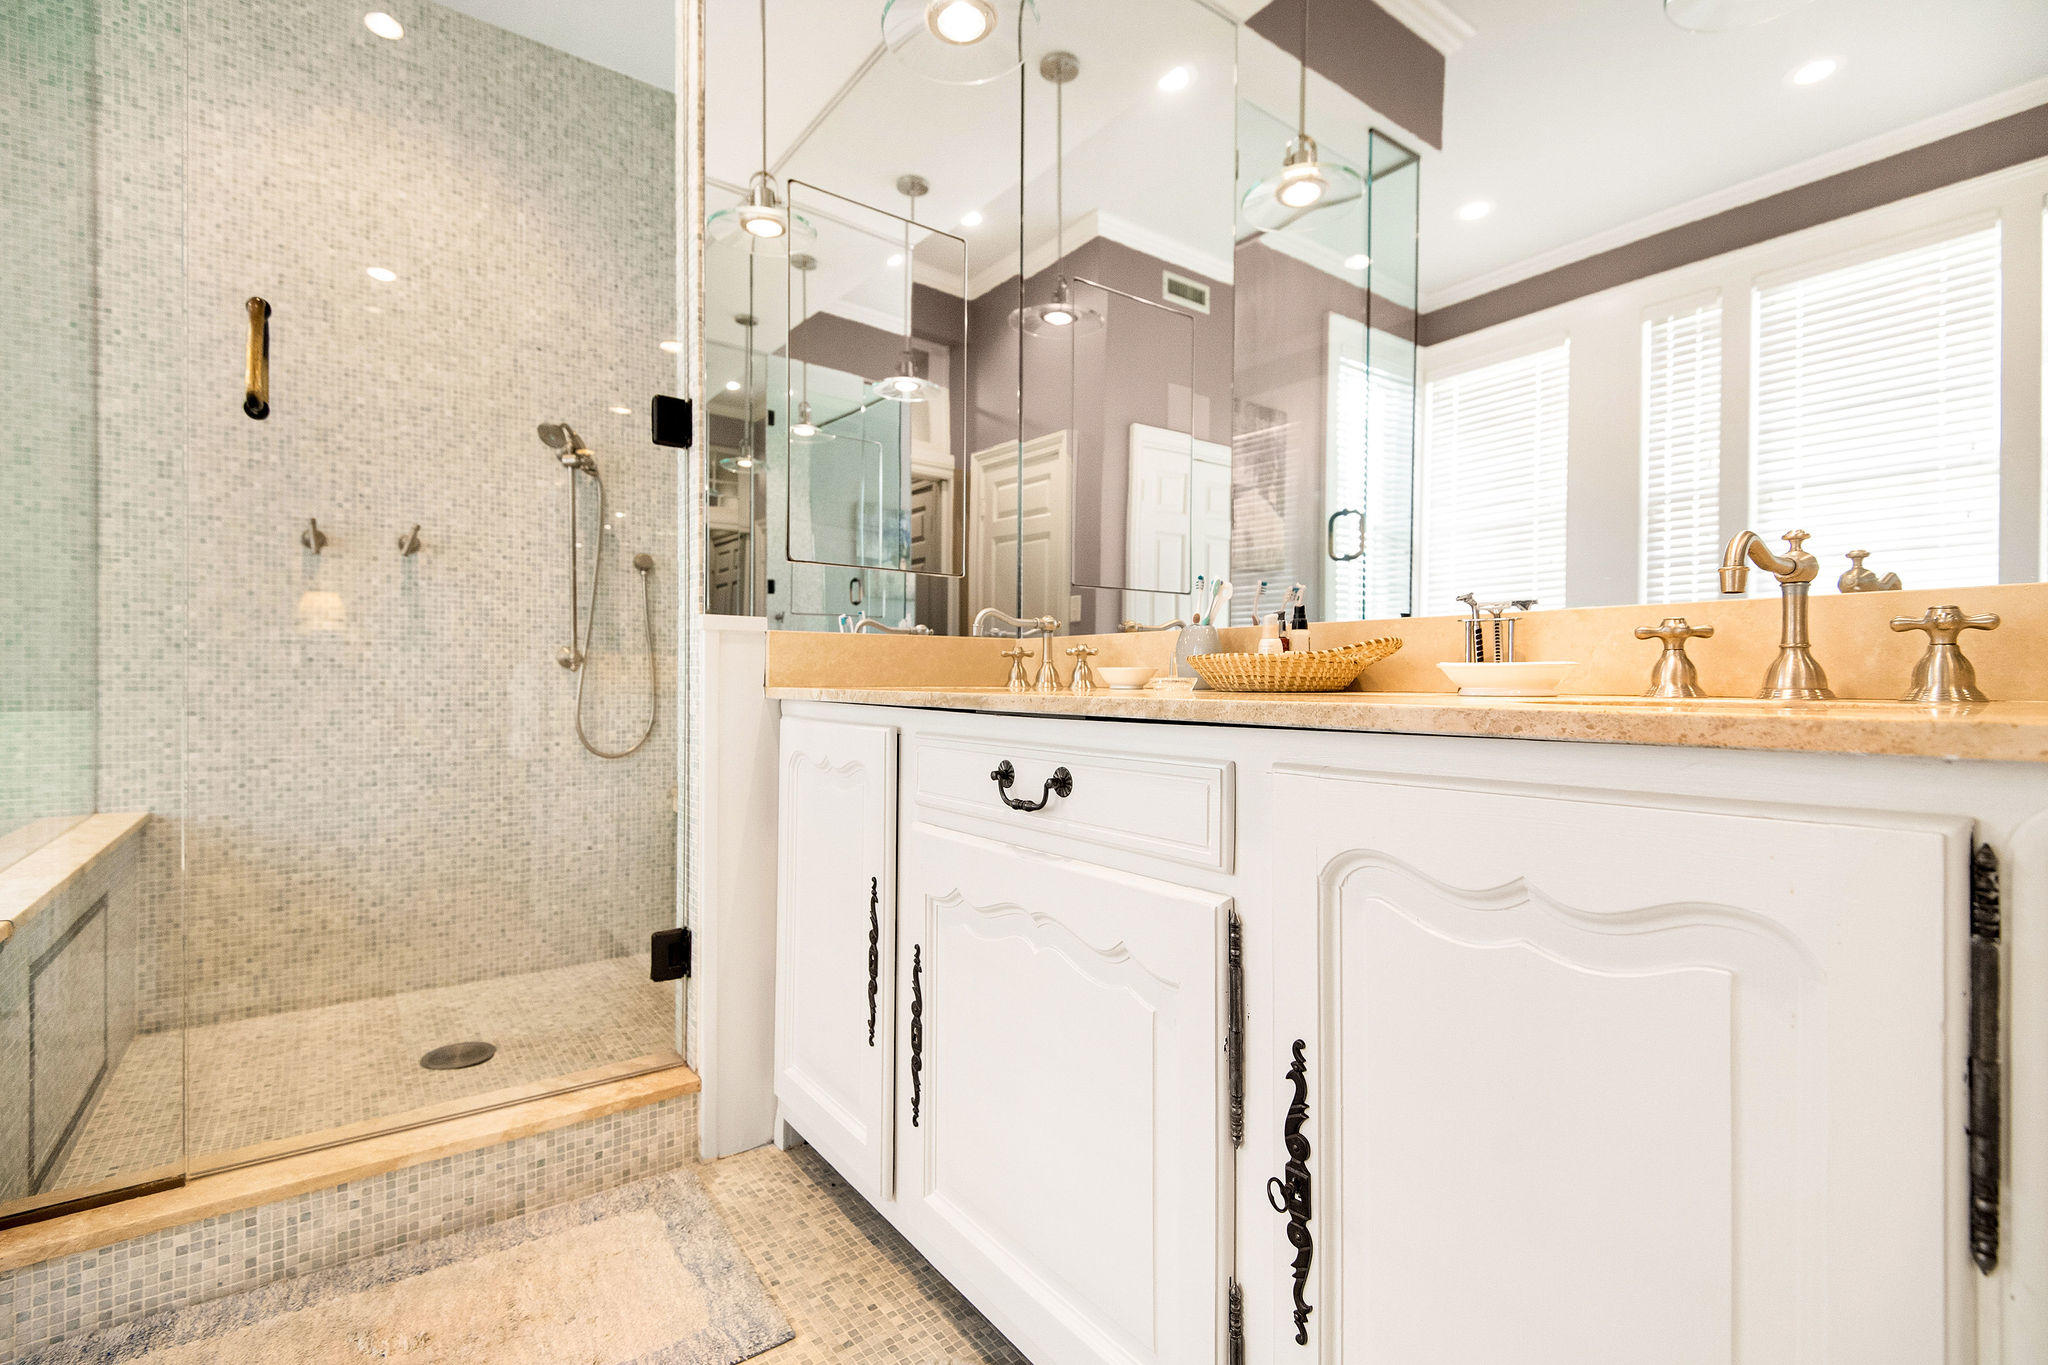 South of Broad Homes For Sale - 54 Tradd, Charleston, SC - 54